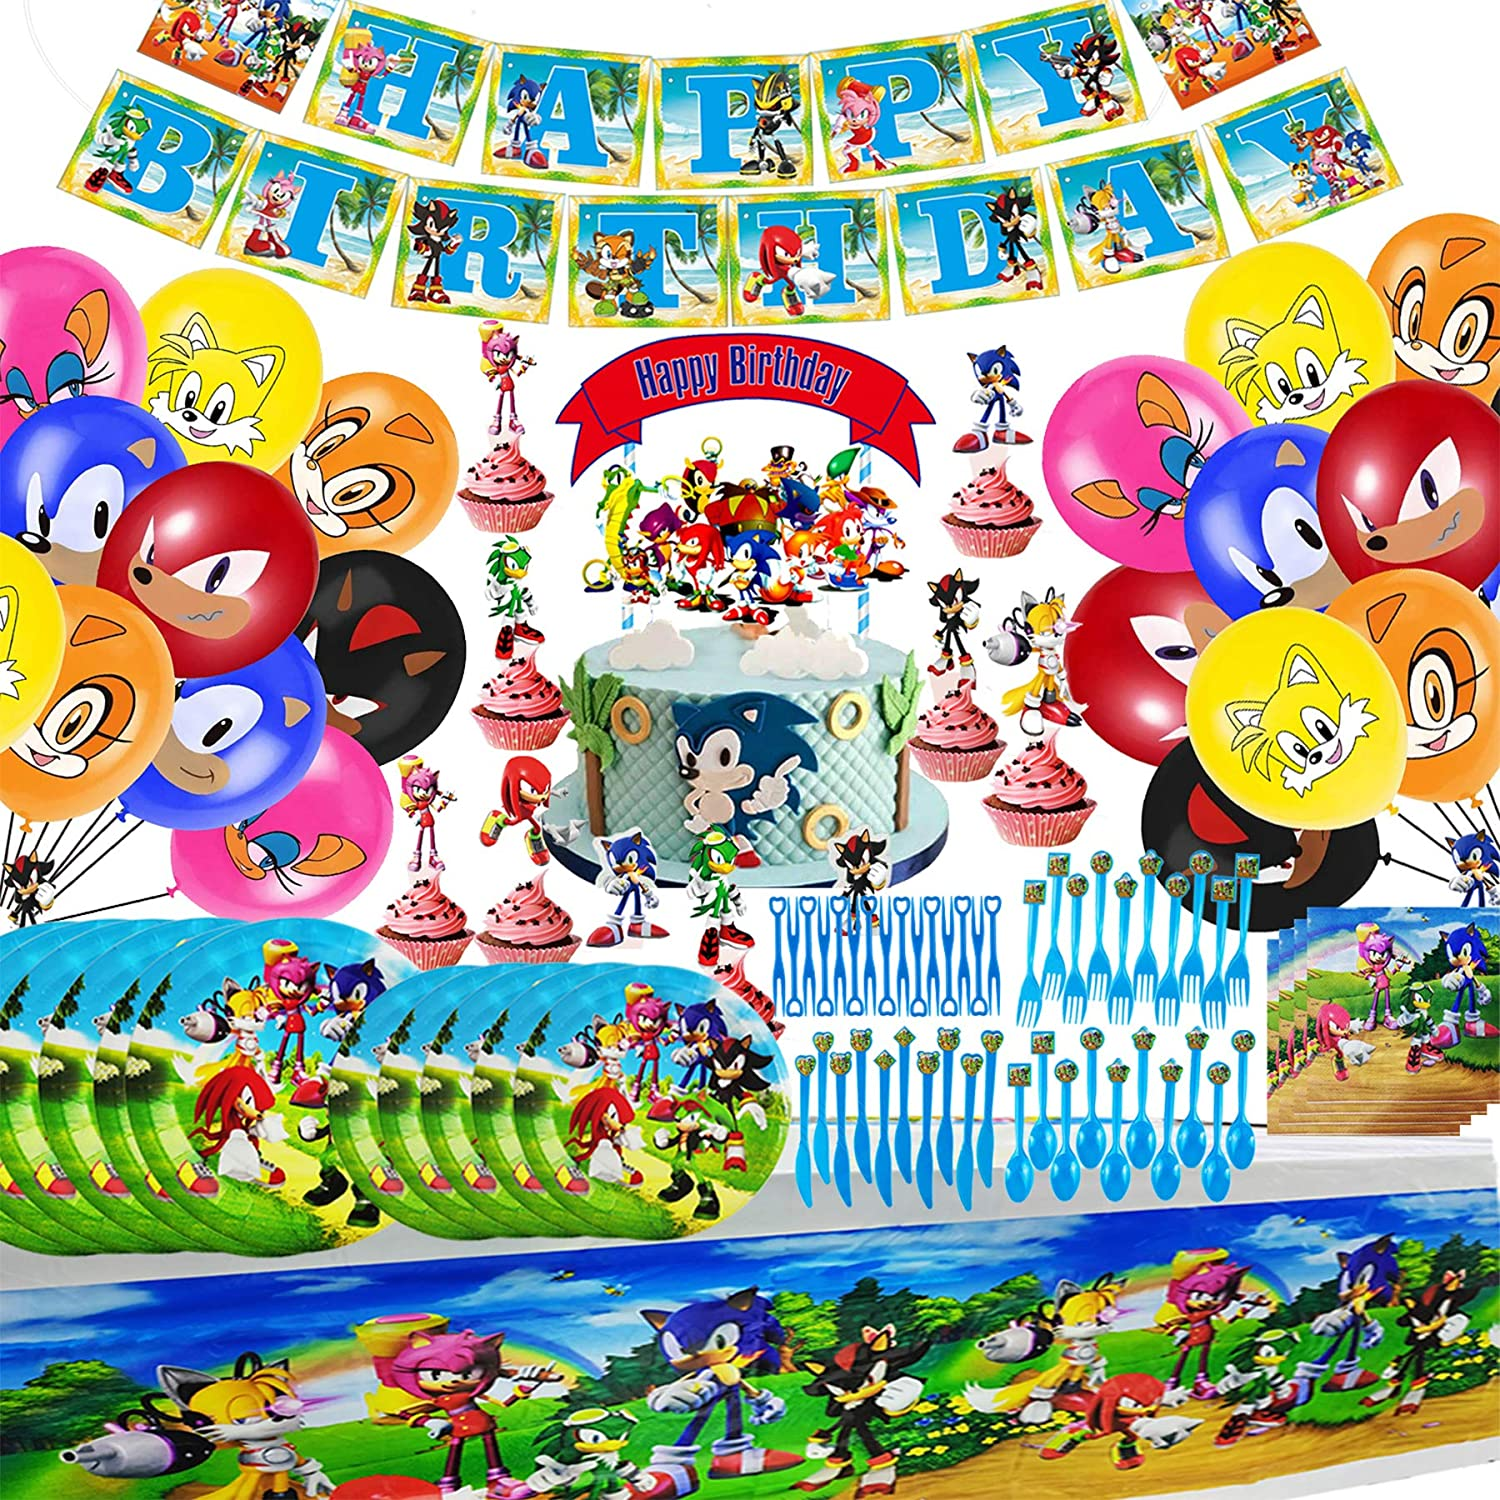 Sonic The Hedgehog Party Supplies, Sonic Flatware, Banner, Balloons, Plates, Napkins, Fork, Spoons, knives, Cake Toppers, Mini fruit fork, Tablecloth Party Decoration Kids Boys Girl and Baby Shower Birthday Party Favors, Sonic The Hedgehog Birthday Party Dessert Set